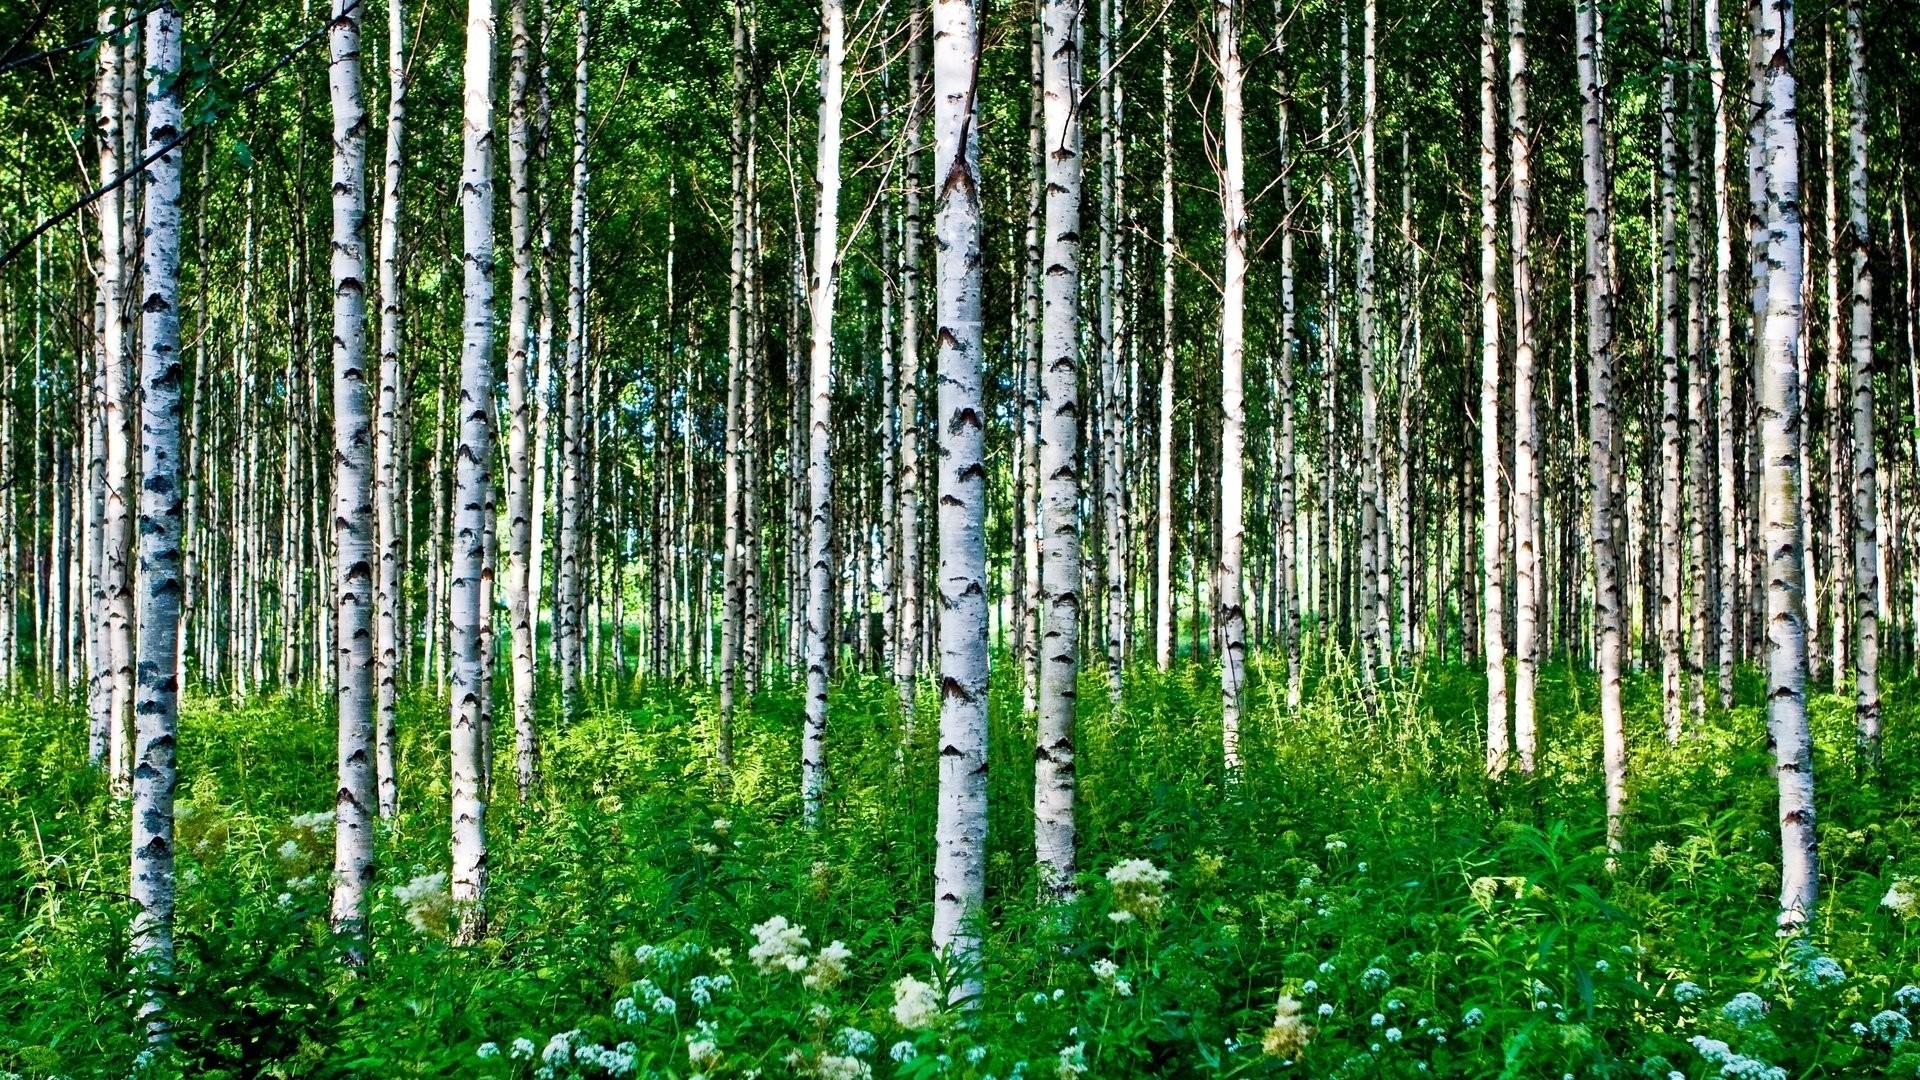 Birch Tree Free Wallpaper and Background